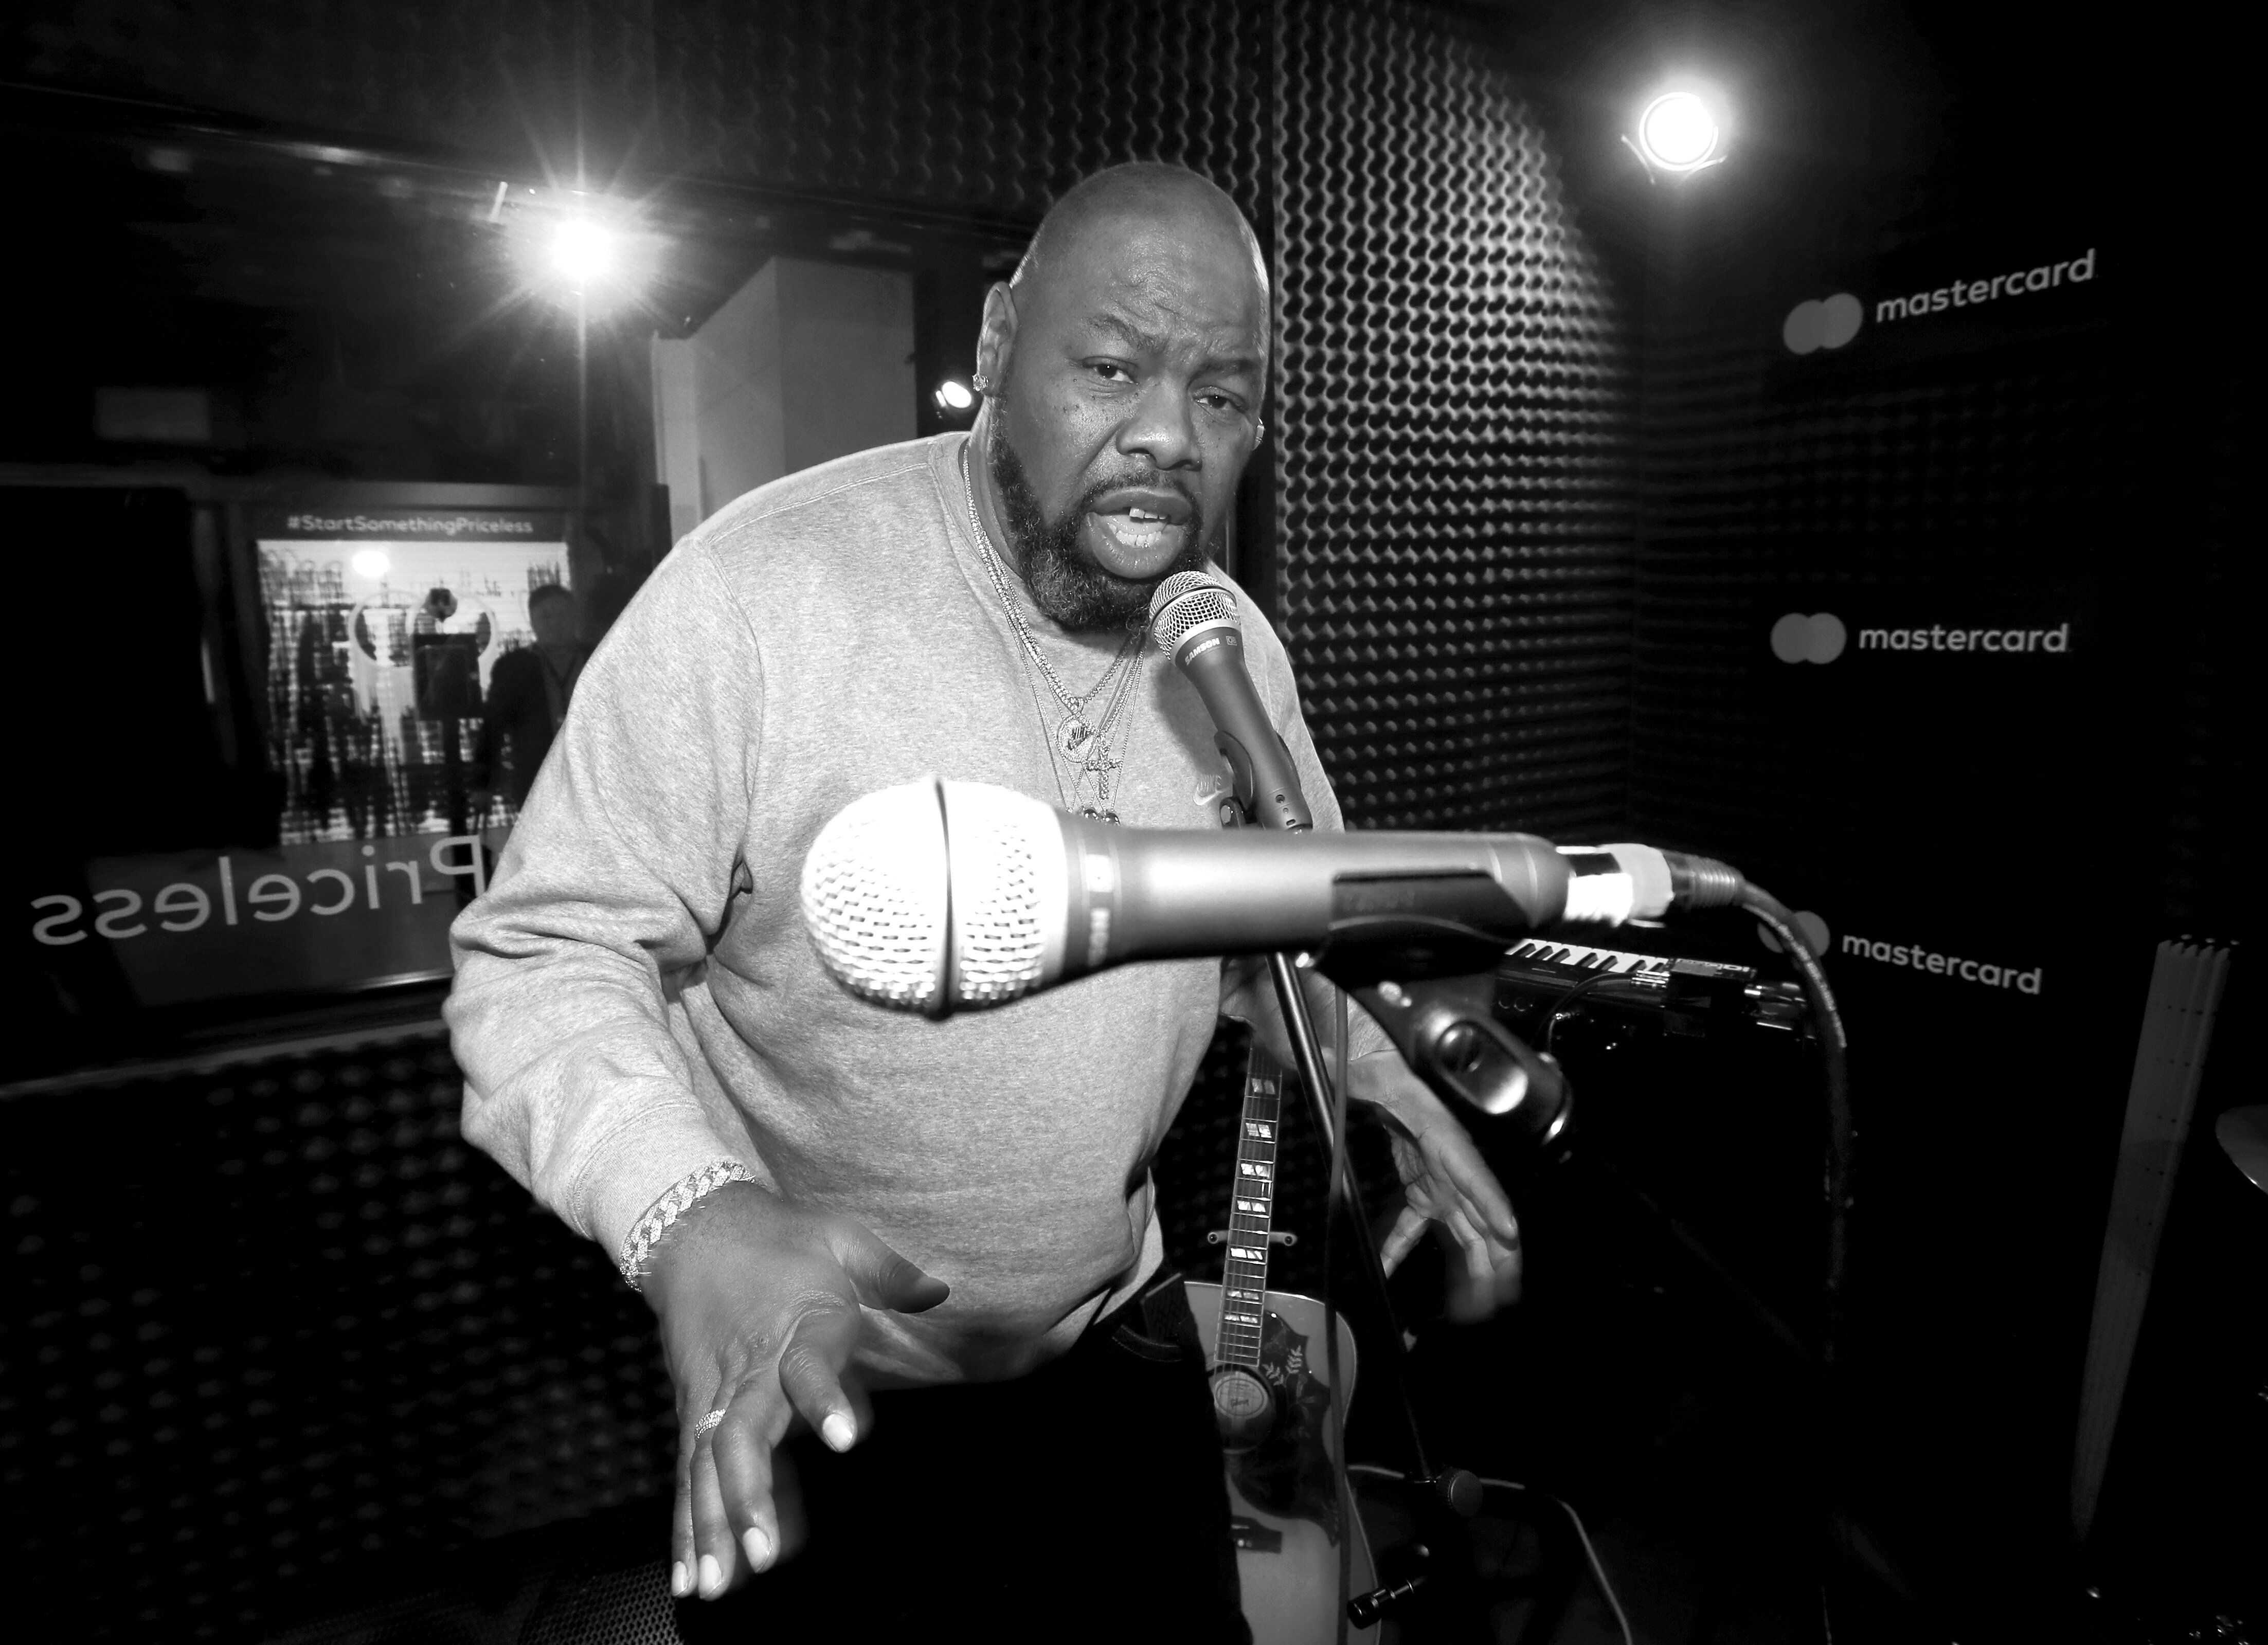 """Biz Markie, a hip-hop staple known for his beatboxing prowess, turntable mastery and the 1989 classic """"Just a Friend,&r"""